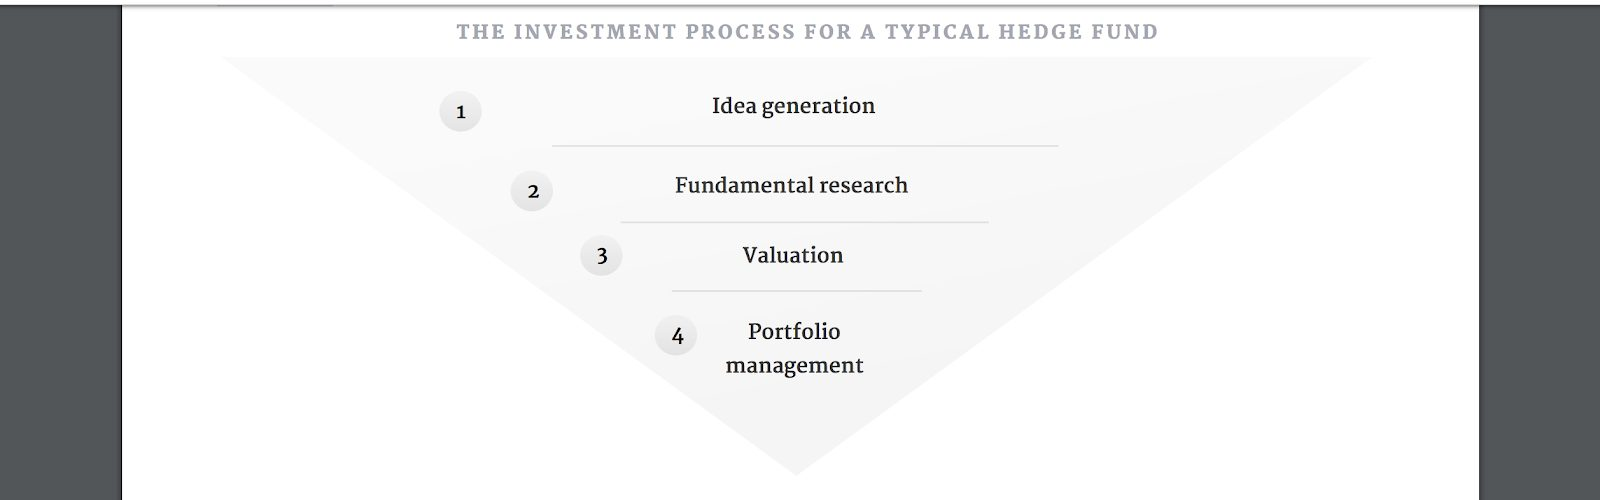 usual hedge fund process formula